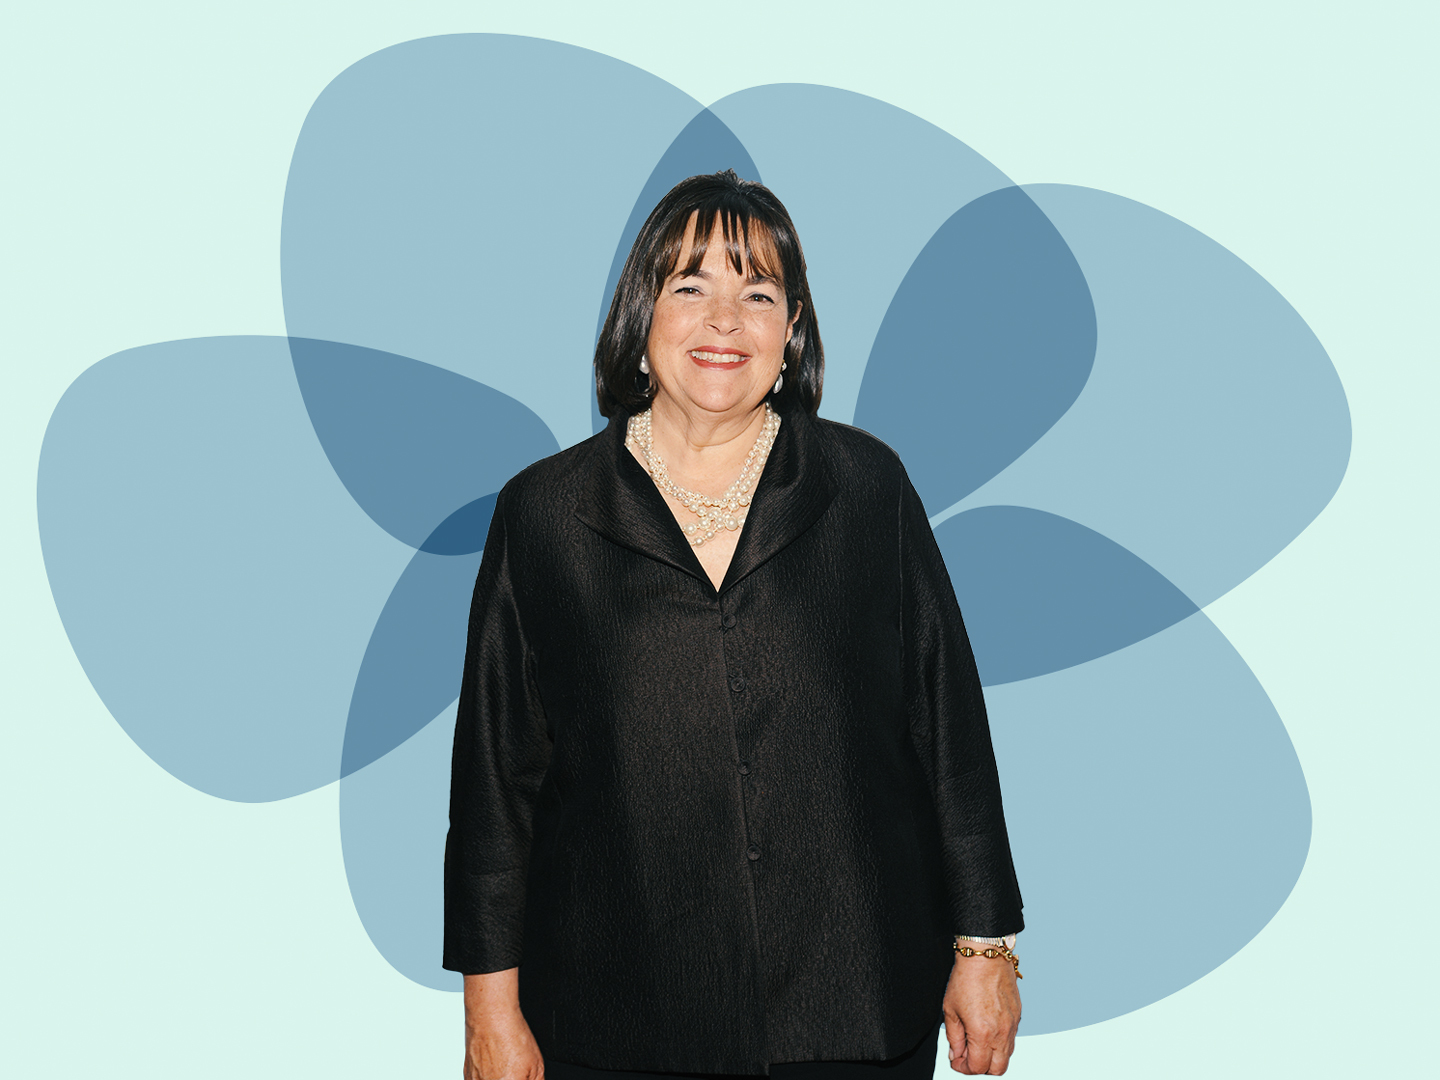 Ina Garten Only Recommends One Brand of Stainless Steel Cookware & It's on Sale atQVC